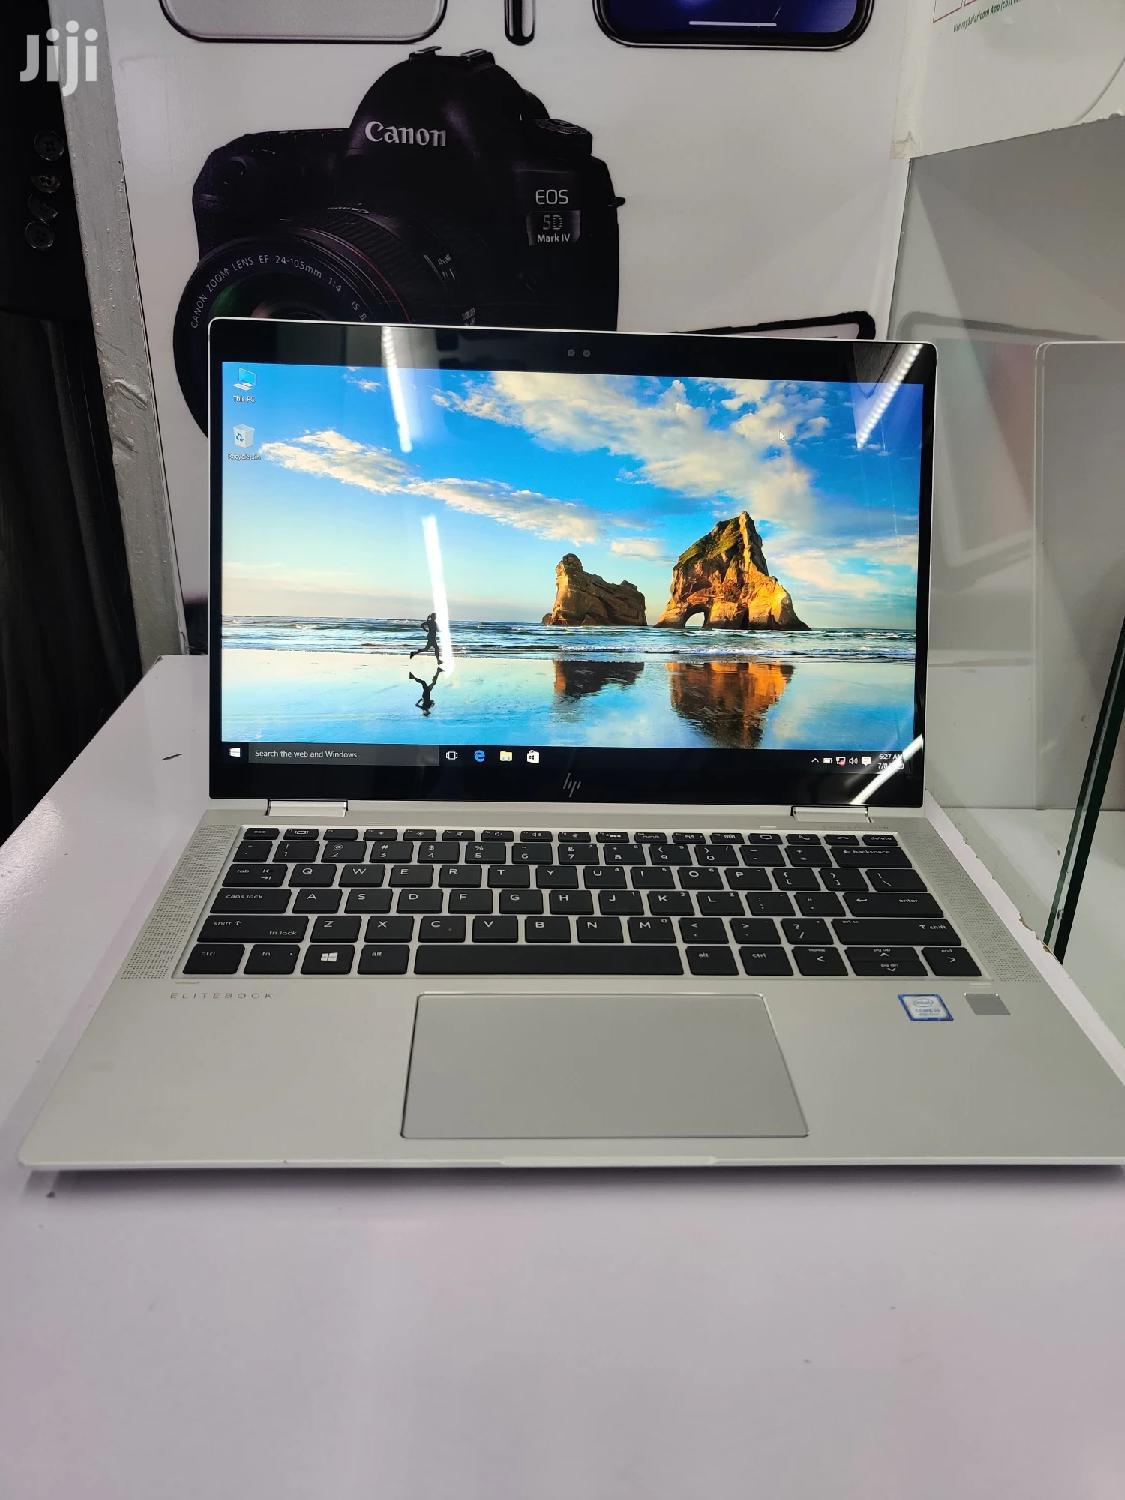 Laptop HP EliteBook X360 1030 G3 8GB Intel Core i5 SSHD (Hybrid) 256GB | Laptops & Computers for sale in Nairobi Central, Nairobi, Kenya